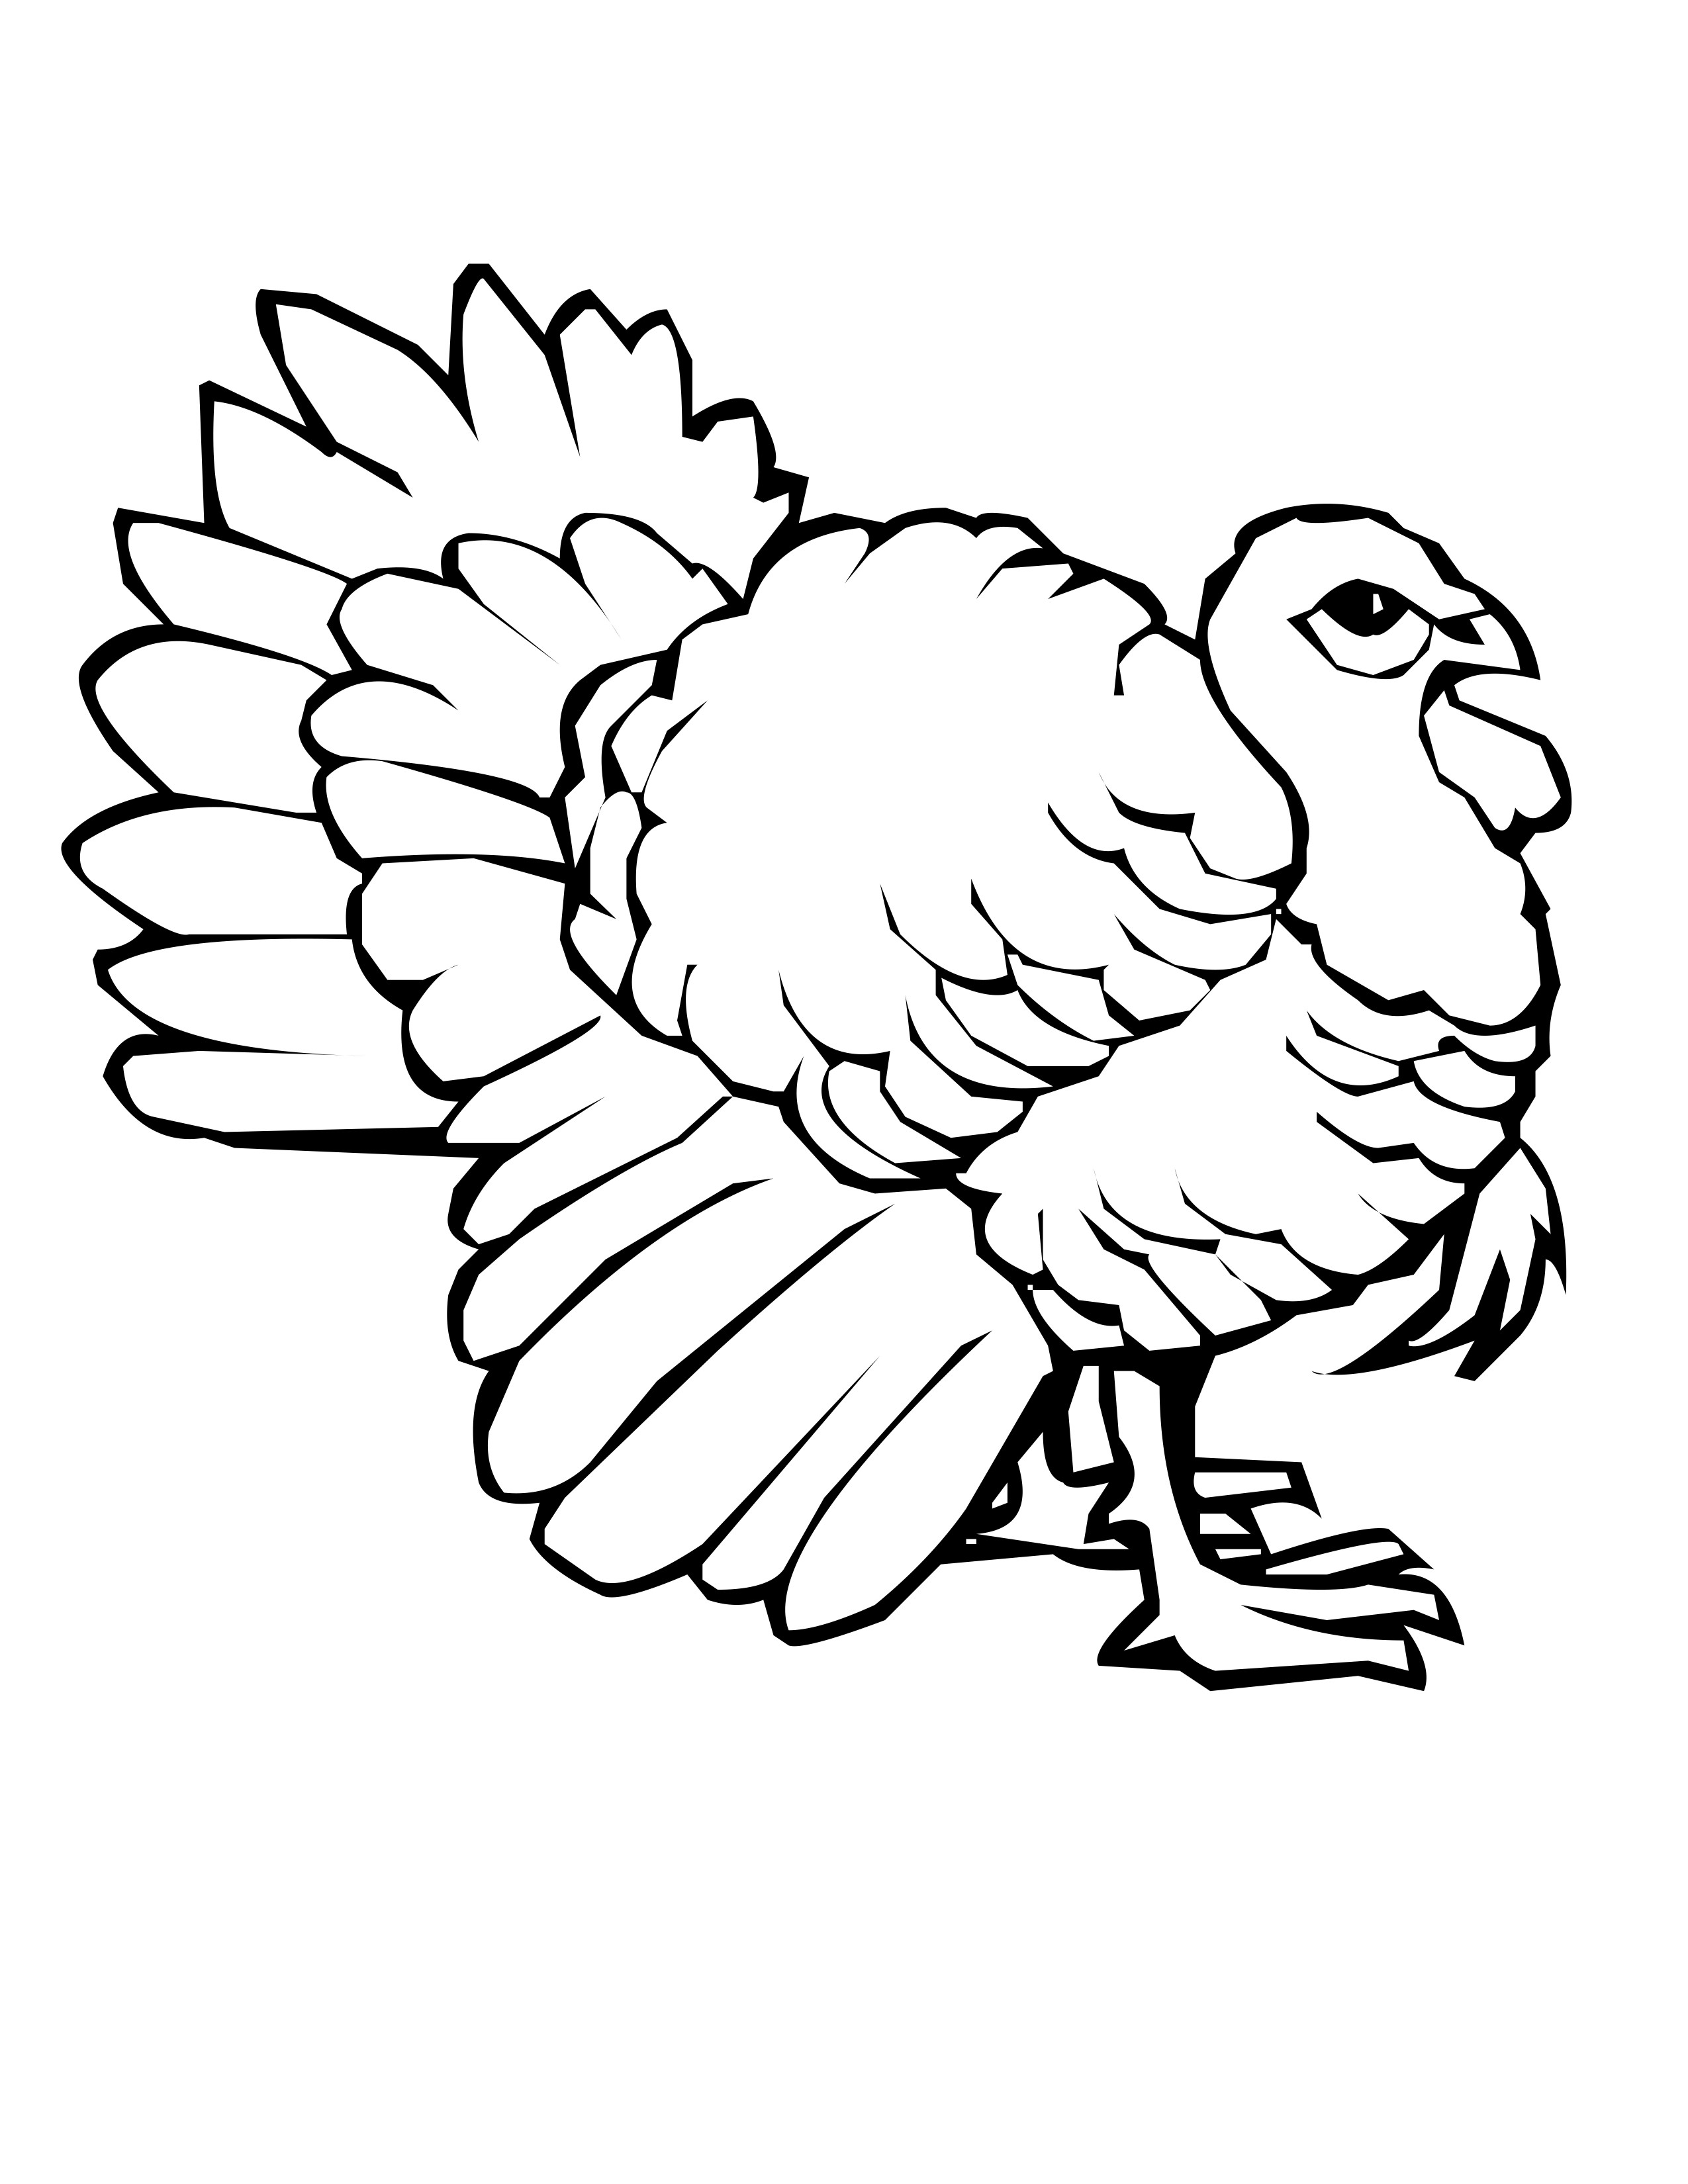 2550x3300 Successful Turkey Outline Coloring Page